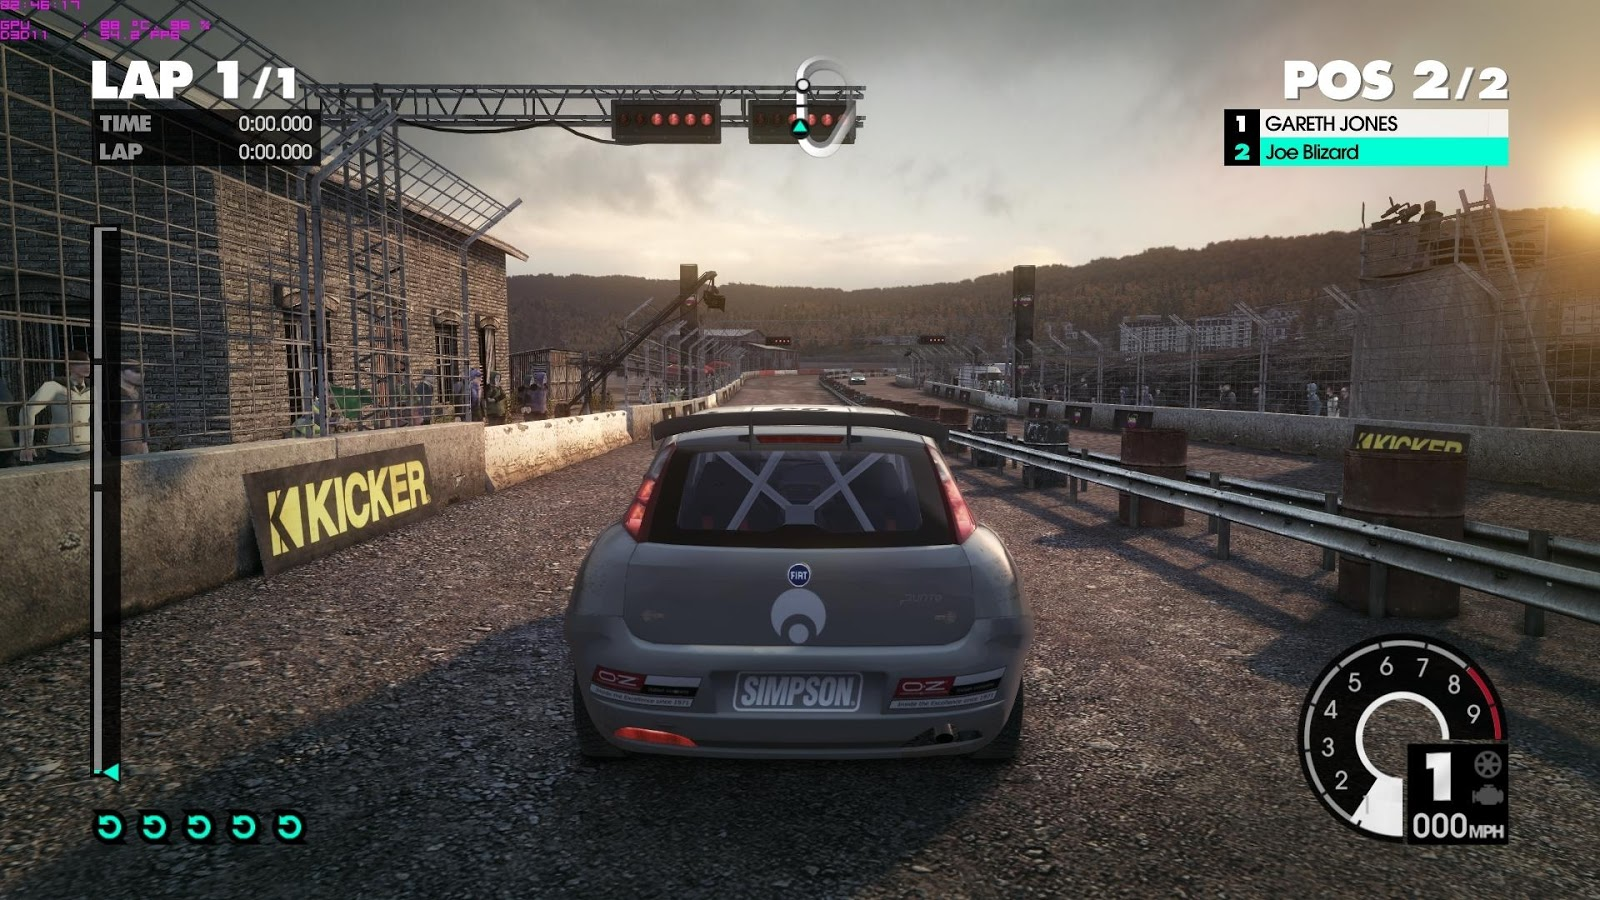 Free car games downloadable.